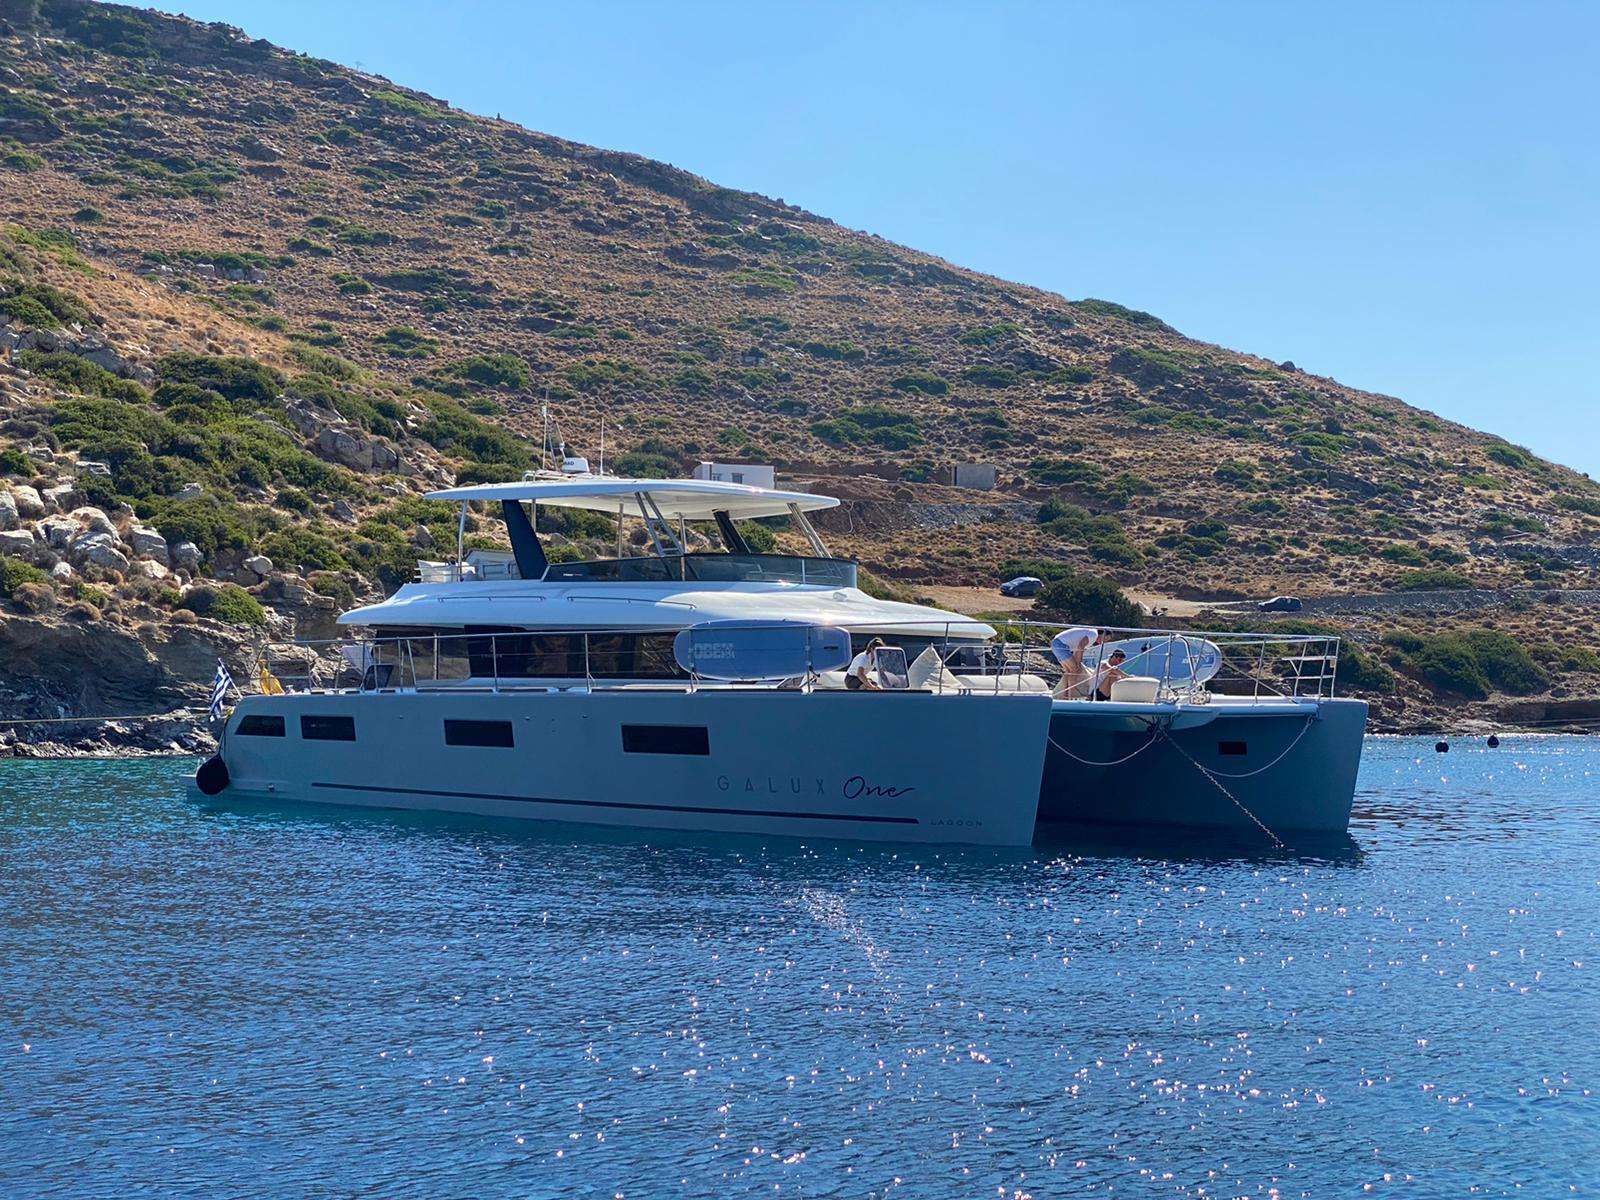 GALUX One Yacht Charter - Ritzy Charters